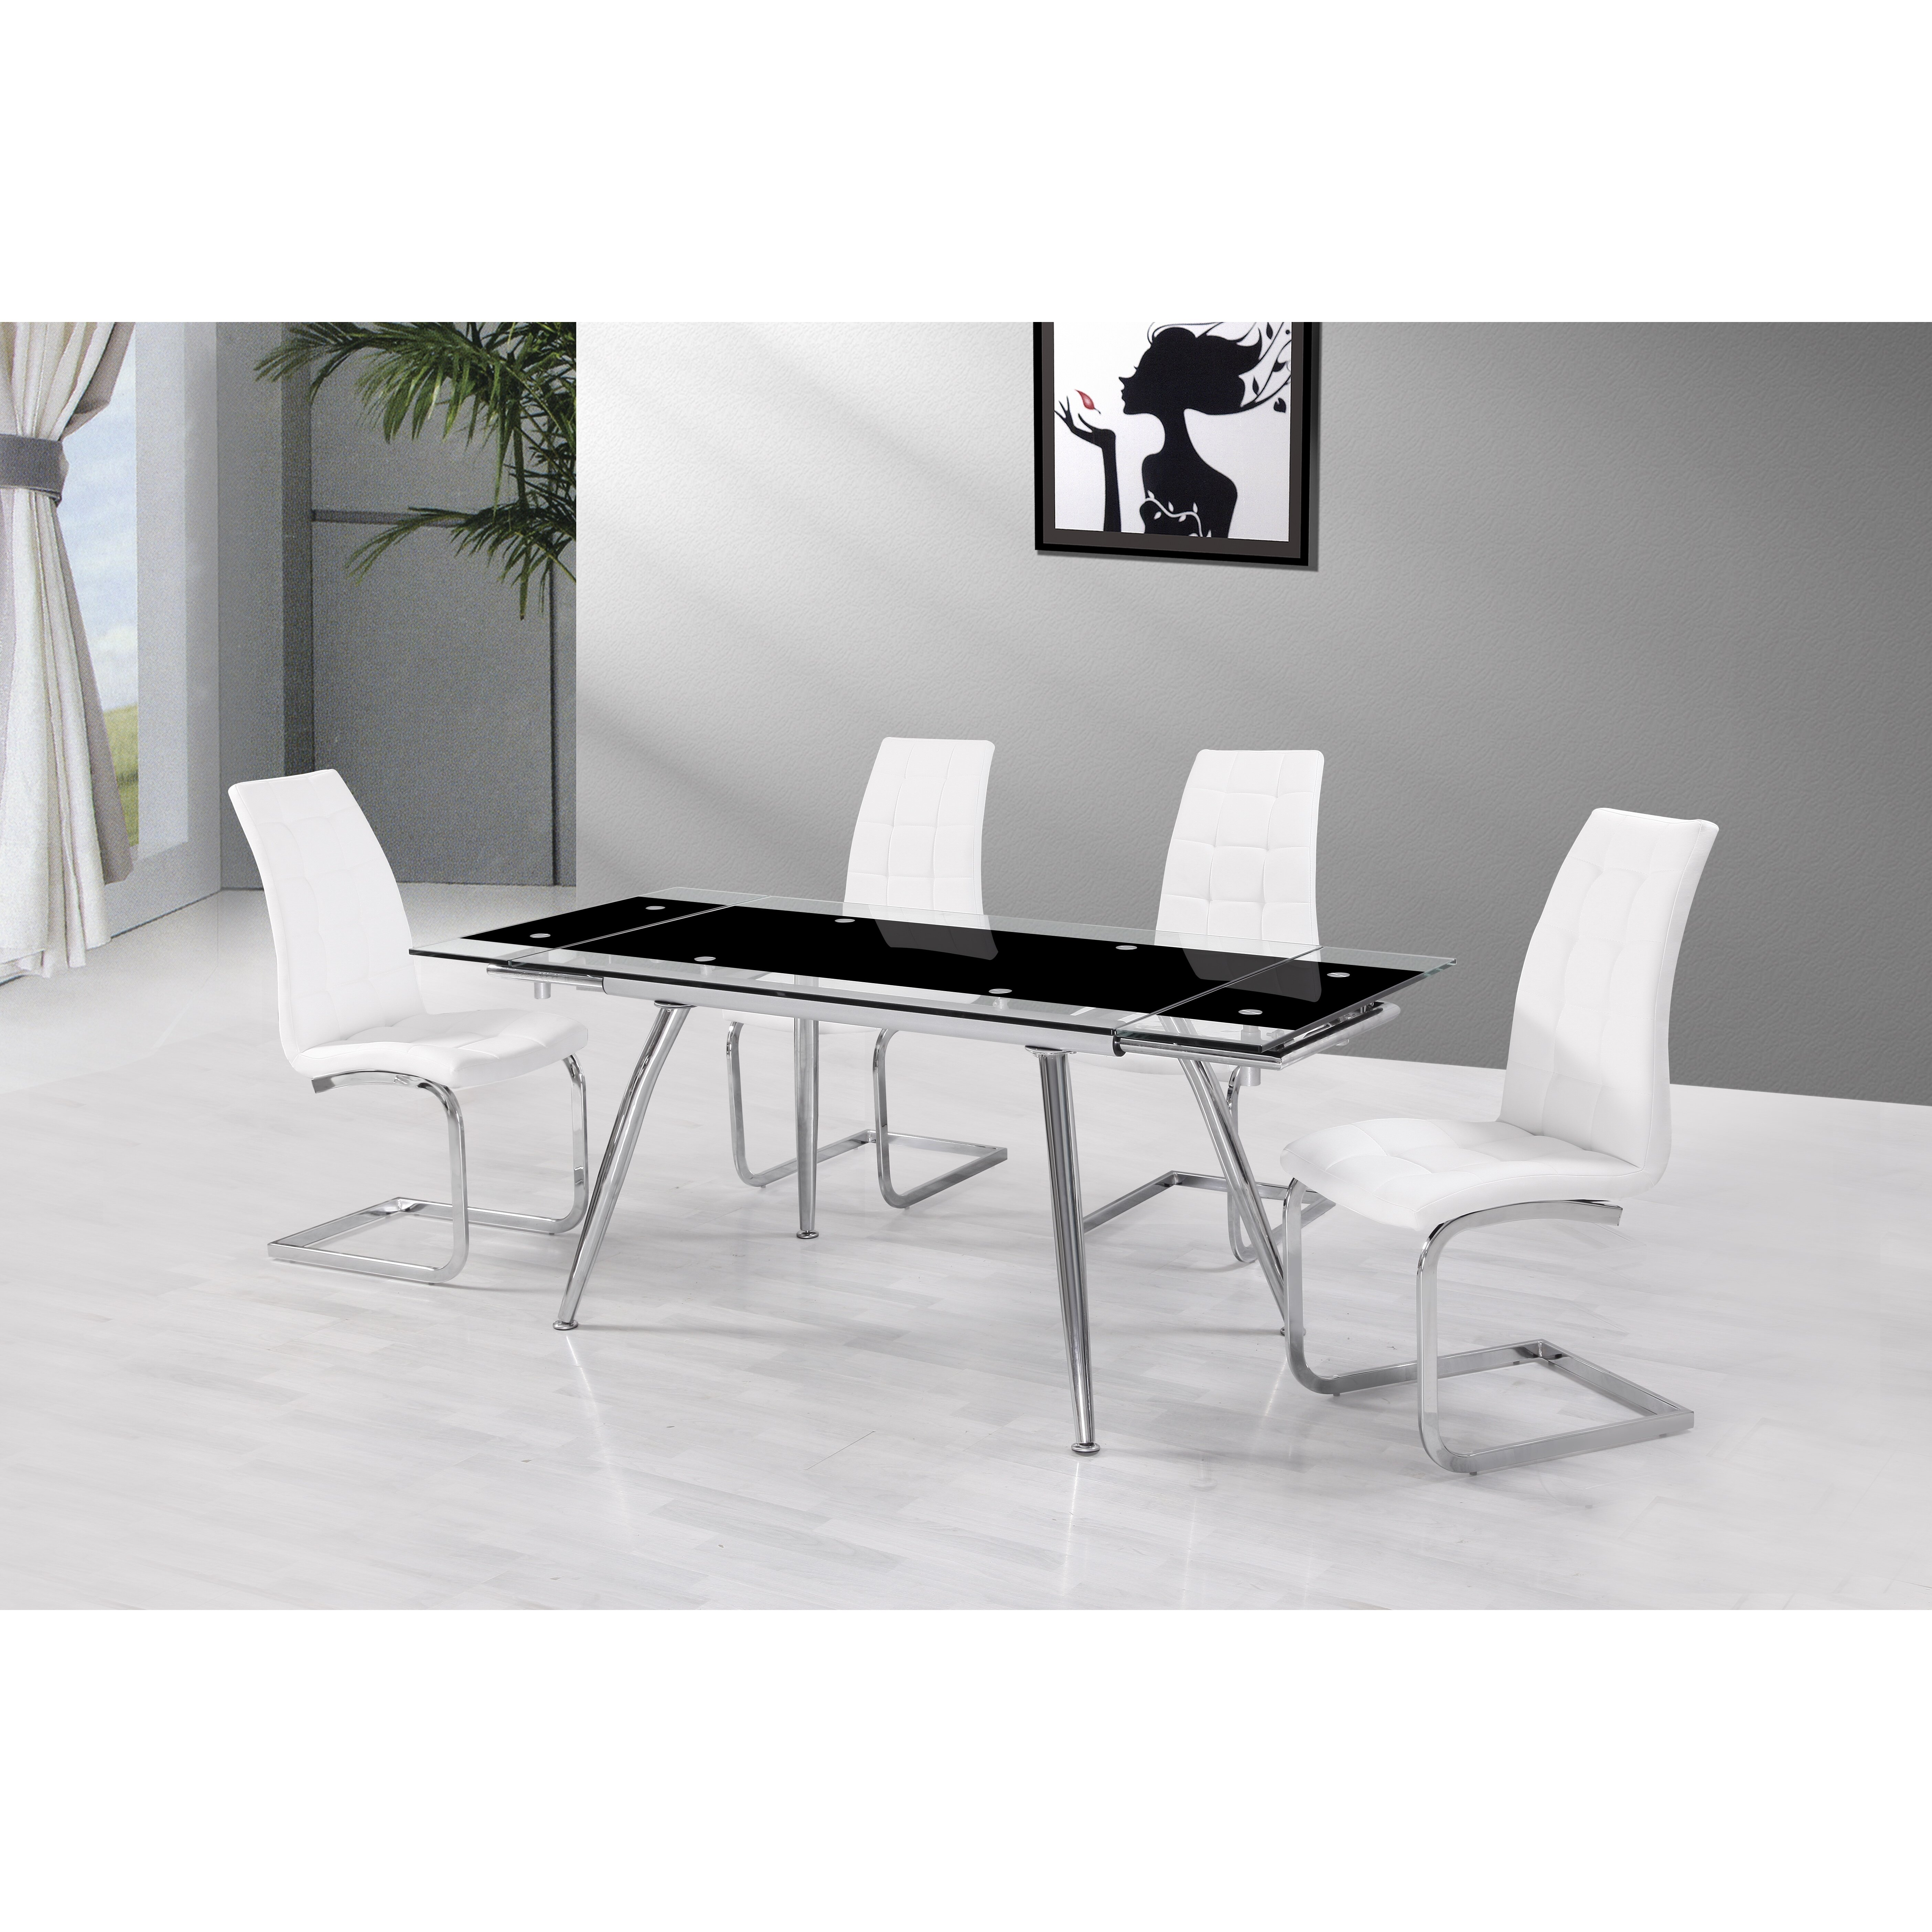 Urban Designs Micha Extendable Dining Table amp Reviews  : Urban Designs Micha Extendable Dining Table from www.wayfair.co.uk size 5616 x 5616 jpeg 3190kB